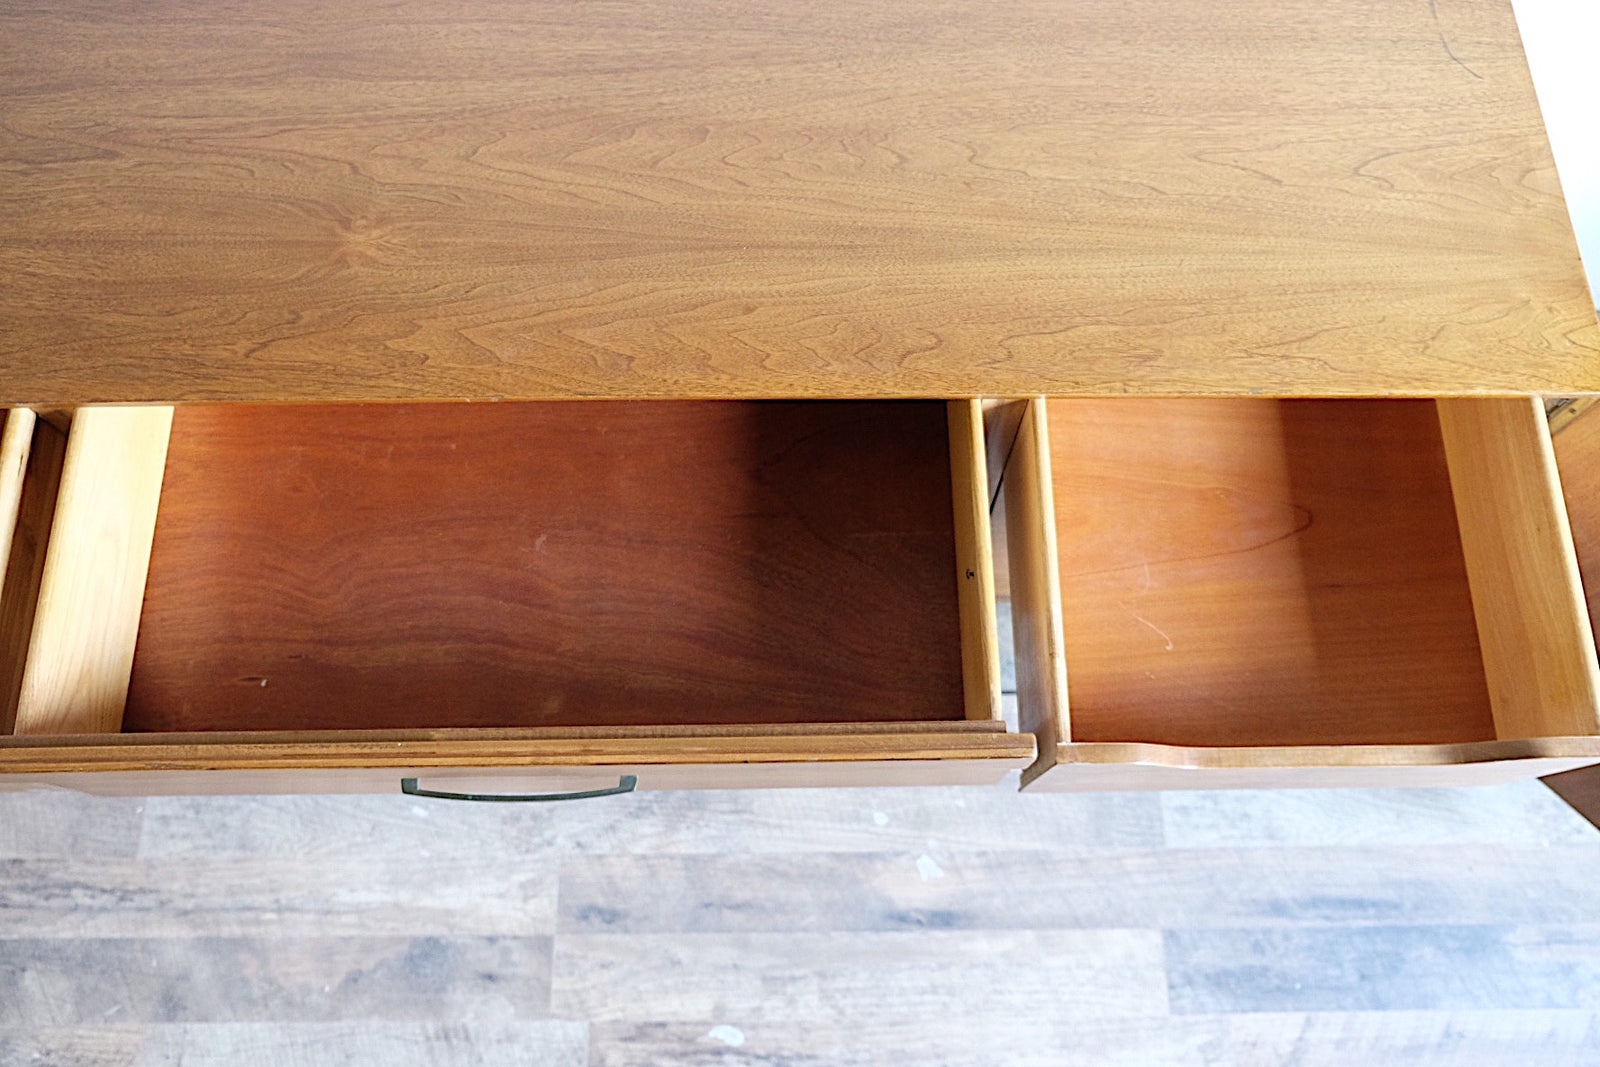 Vintage Mid Century Modern Sideboard Brass Handles Three Drawers Two Cabinets Six Shirt Tray Style Drawers